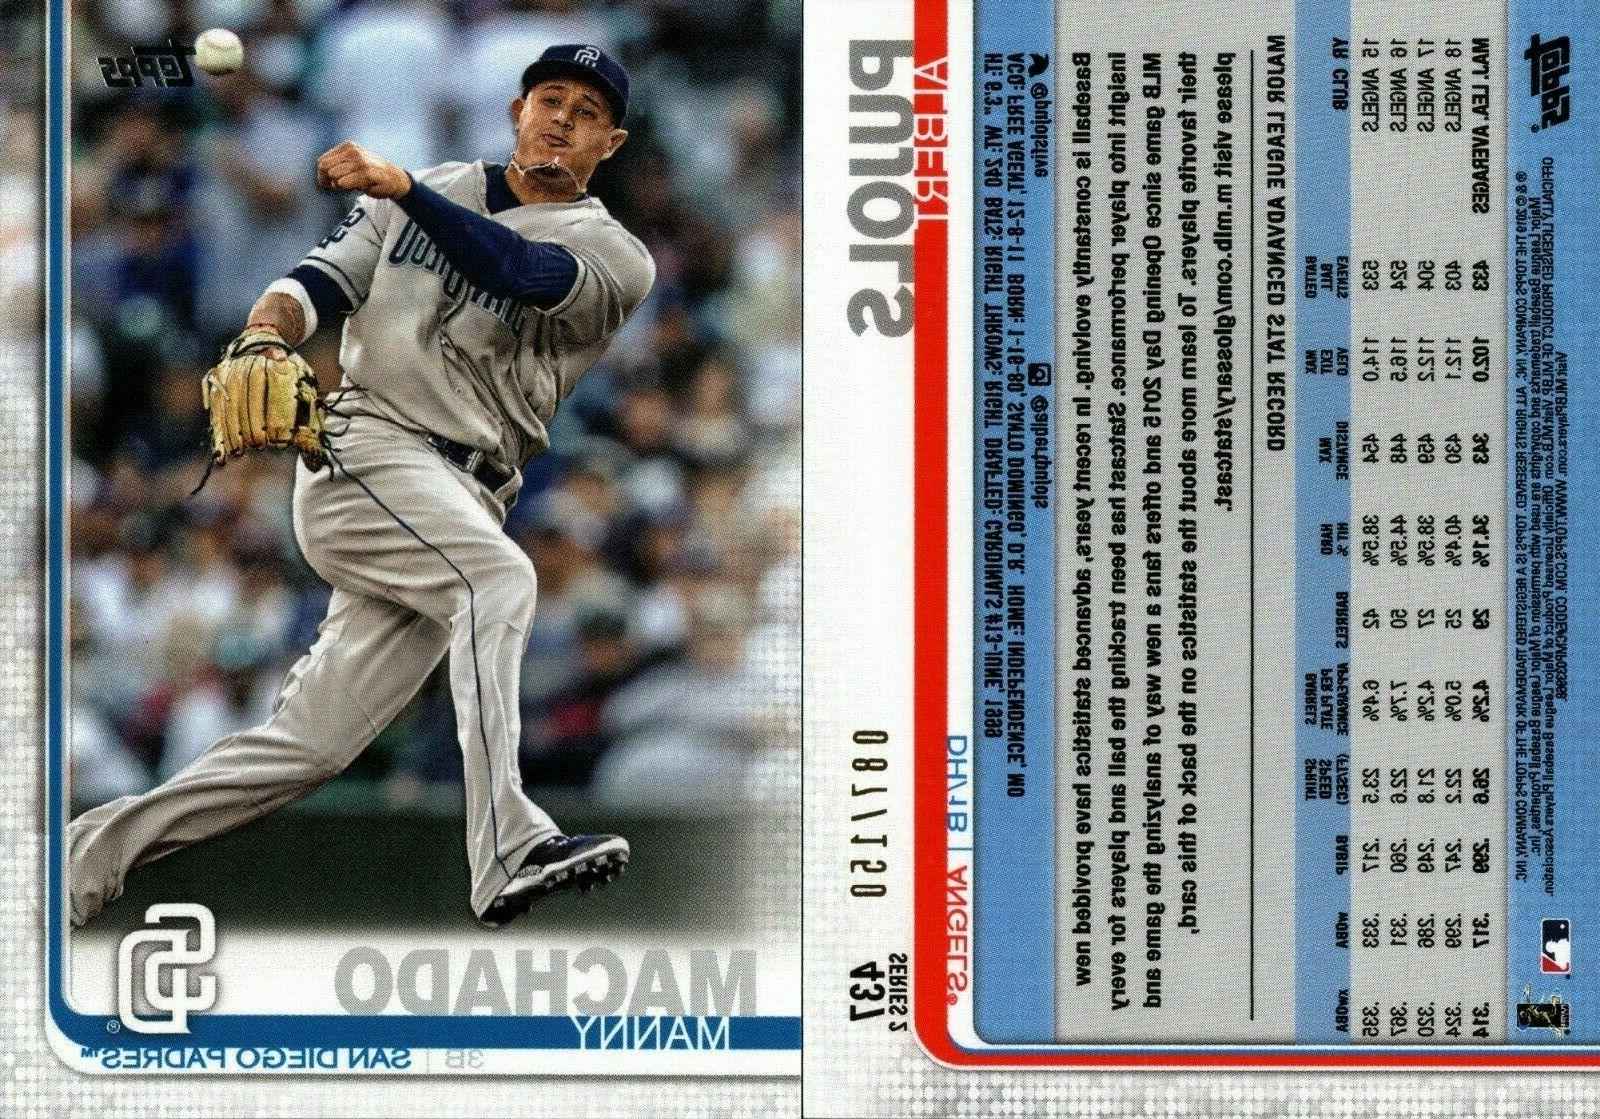 2019 topps series 2 advanced stats 150